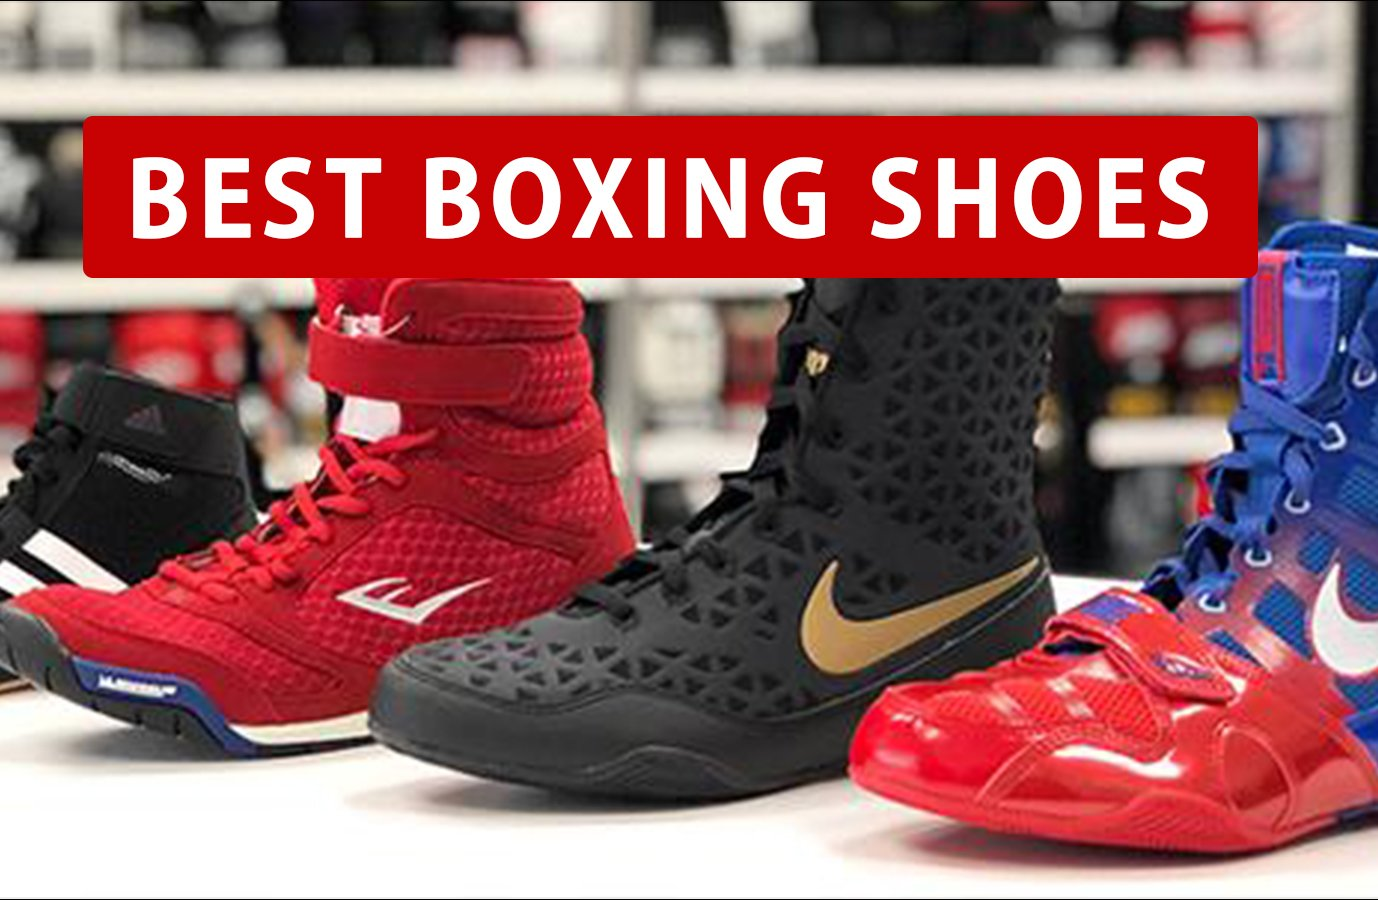 Best Boxing Shoes 2020 Reviews and